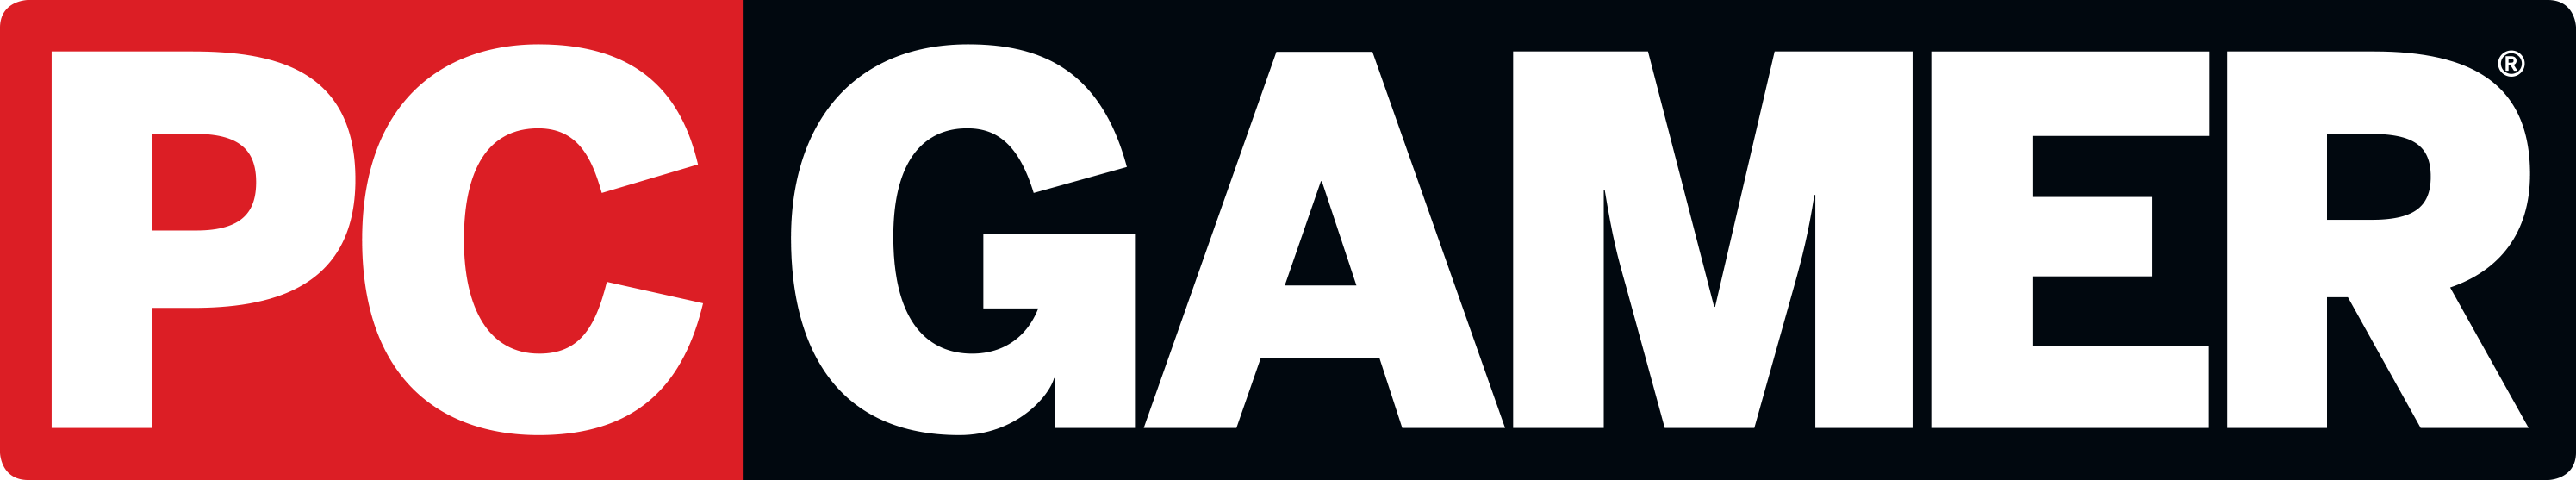 PC Gamer logo